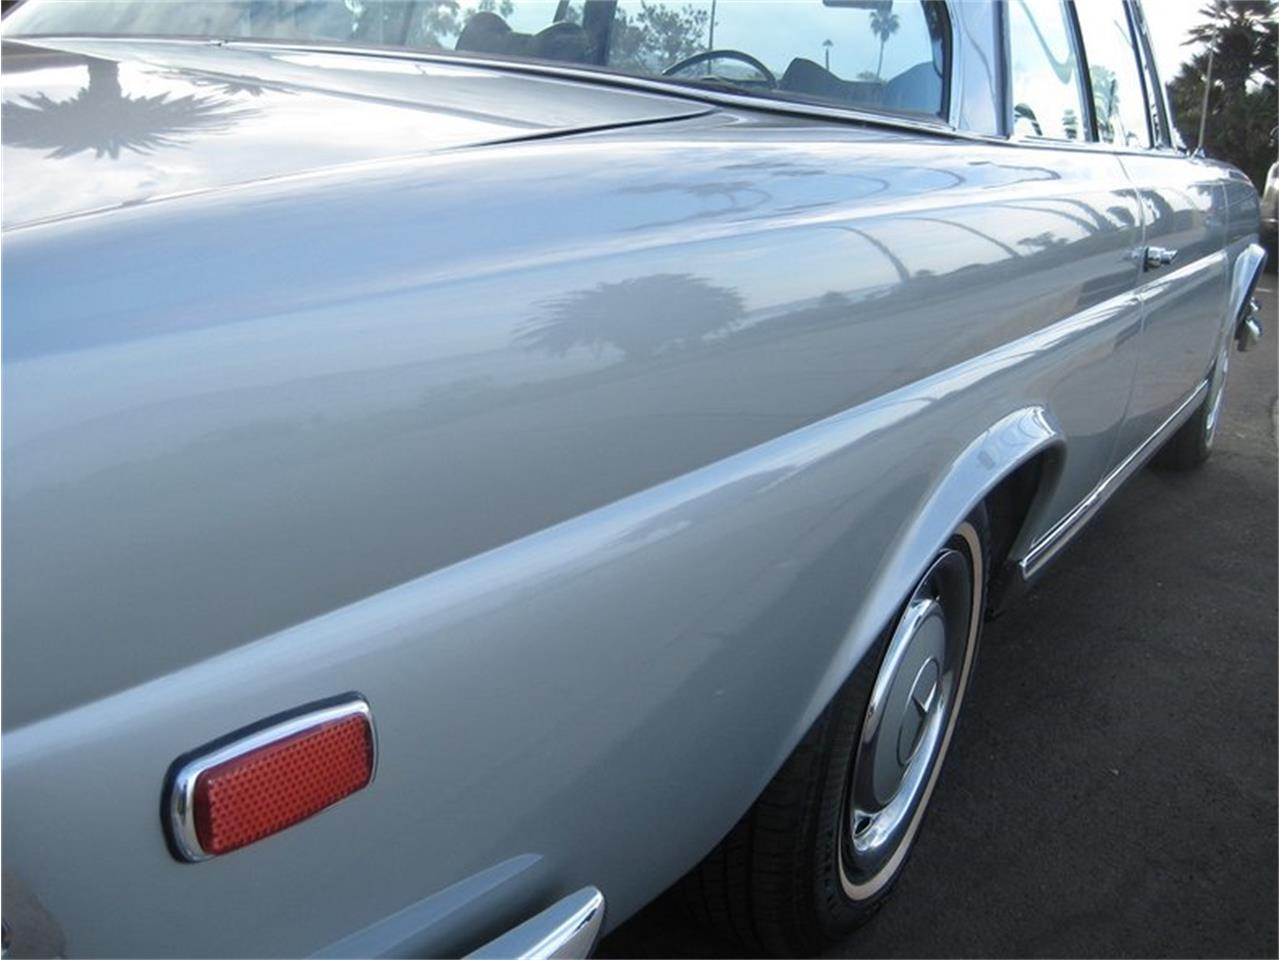 Large Picture of '69 Mercedes-Benz 280SE located in Laguna Beach California - $109,000.00 - MGKL